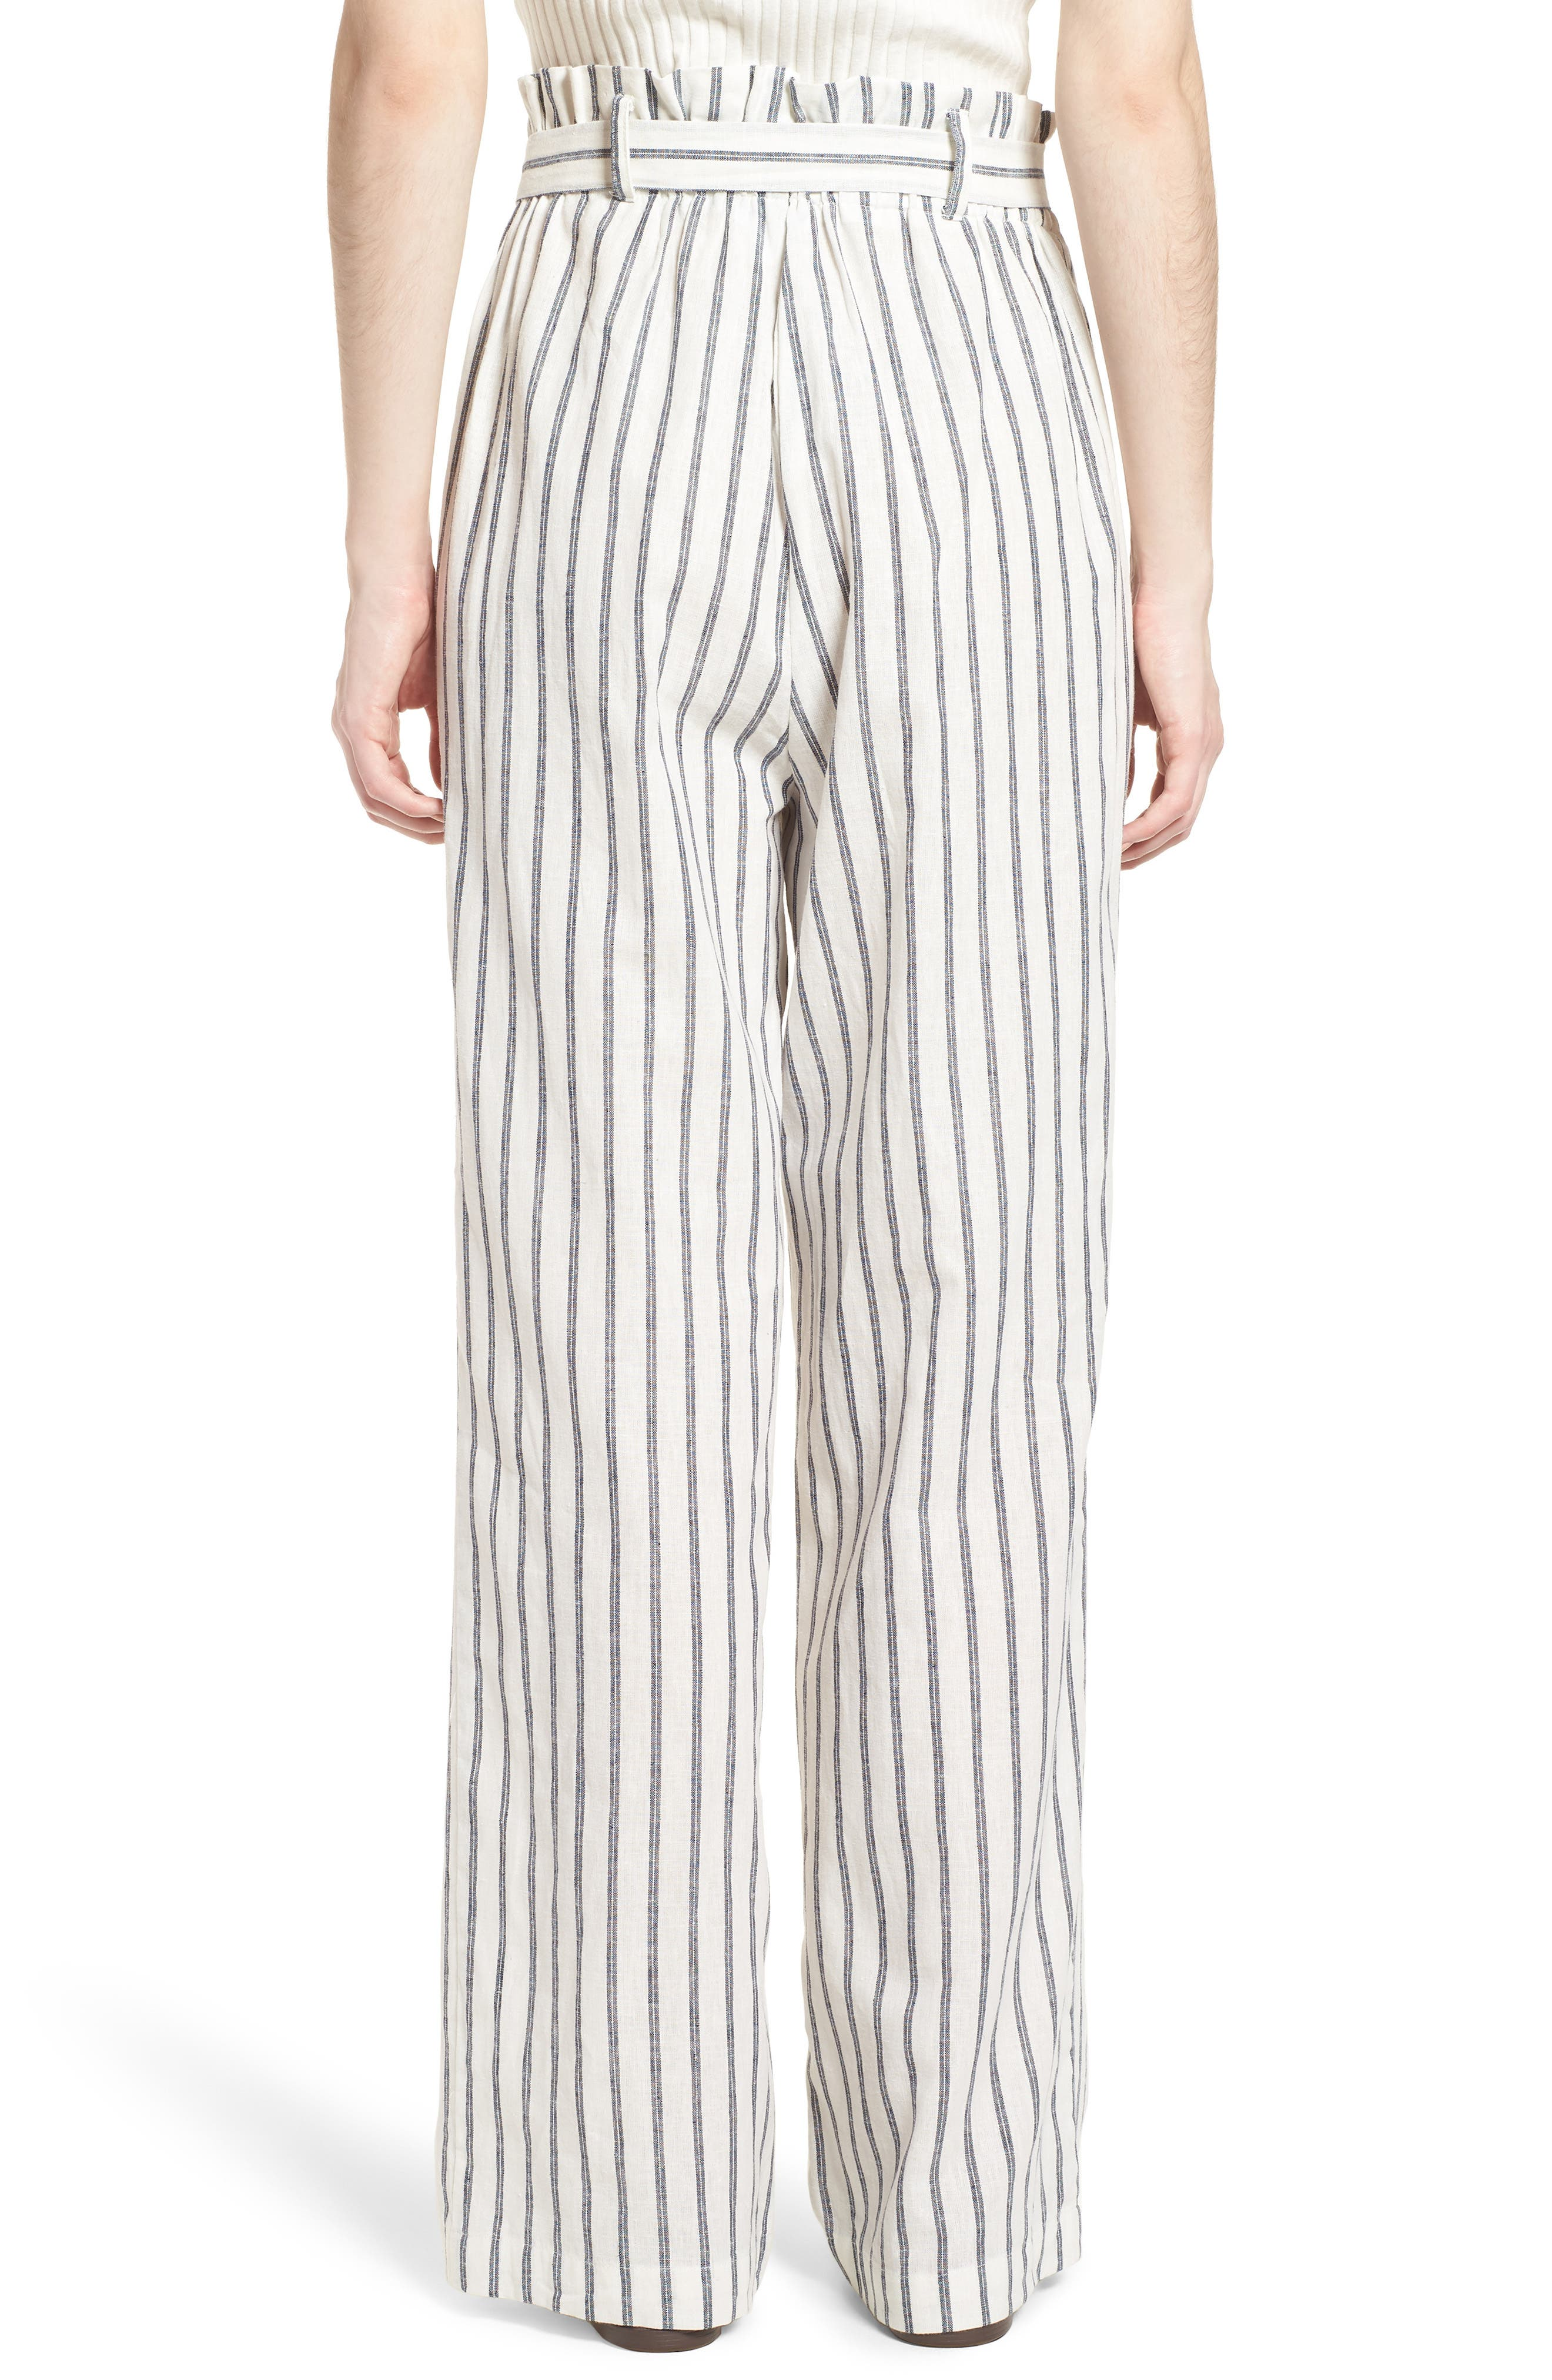 Paper Bag Linen & Cotton Pants,                             Alternate thumbnail 3, color,                             Ivory / Blue Stripe